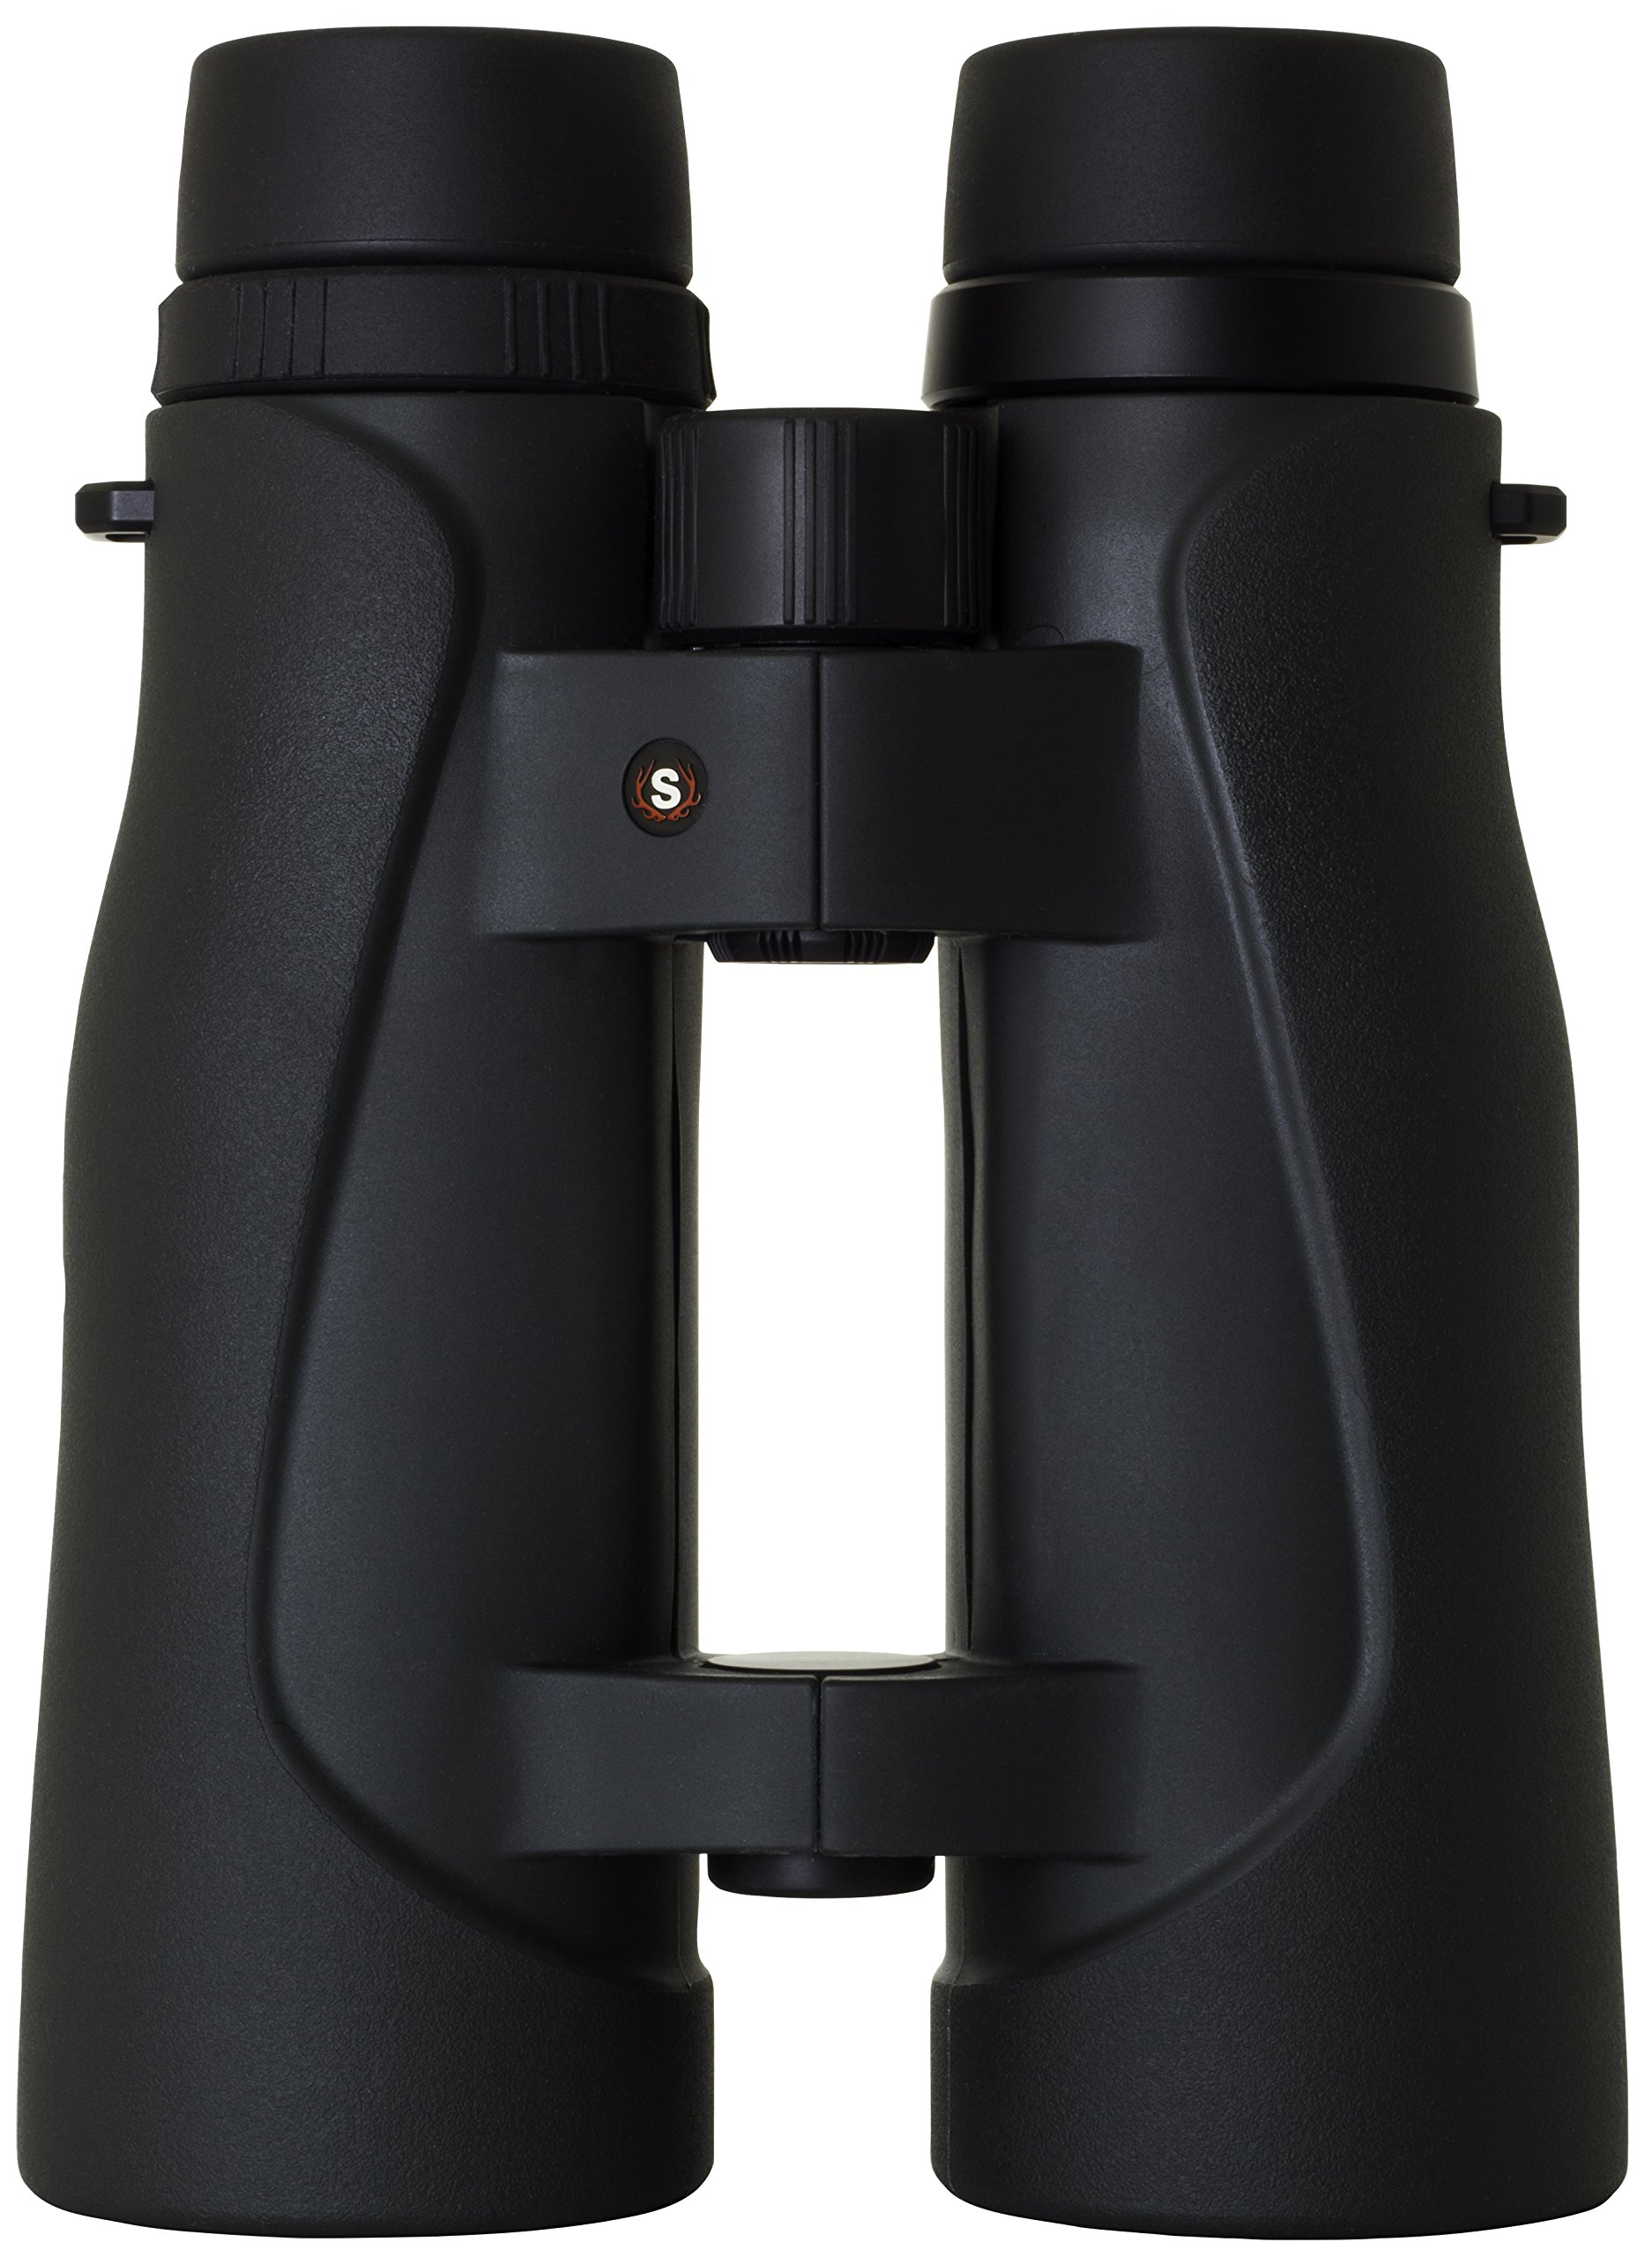 Styrka S9 Series 15x56 ED Binocular, ST-39920 - Hunting, Wildlife and Bird Watching, Sports, Sightseeing and Travel - Long Range Viewing - Waterproof - Professional Quality - Styrka Strong by Styrka